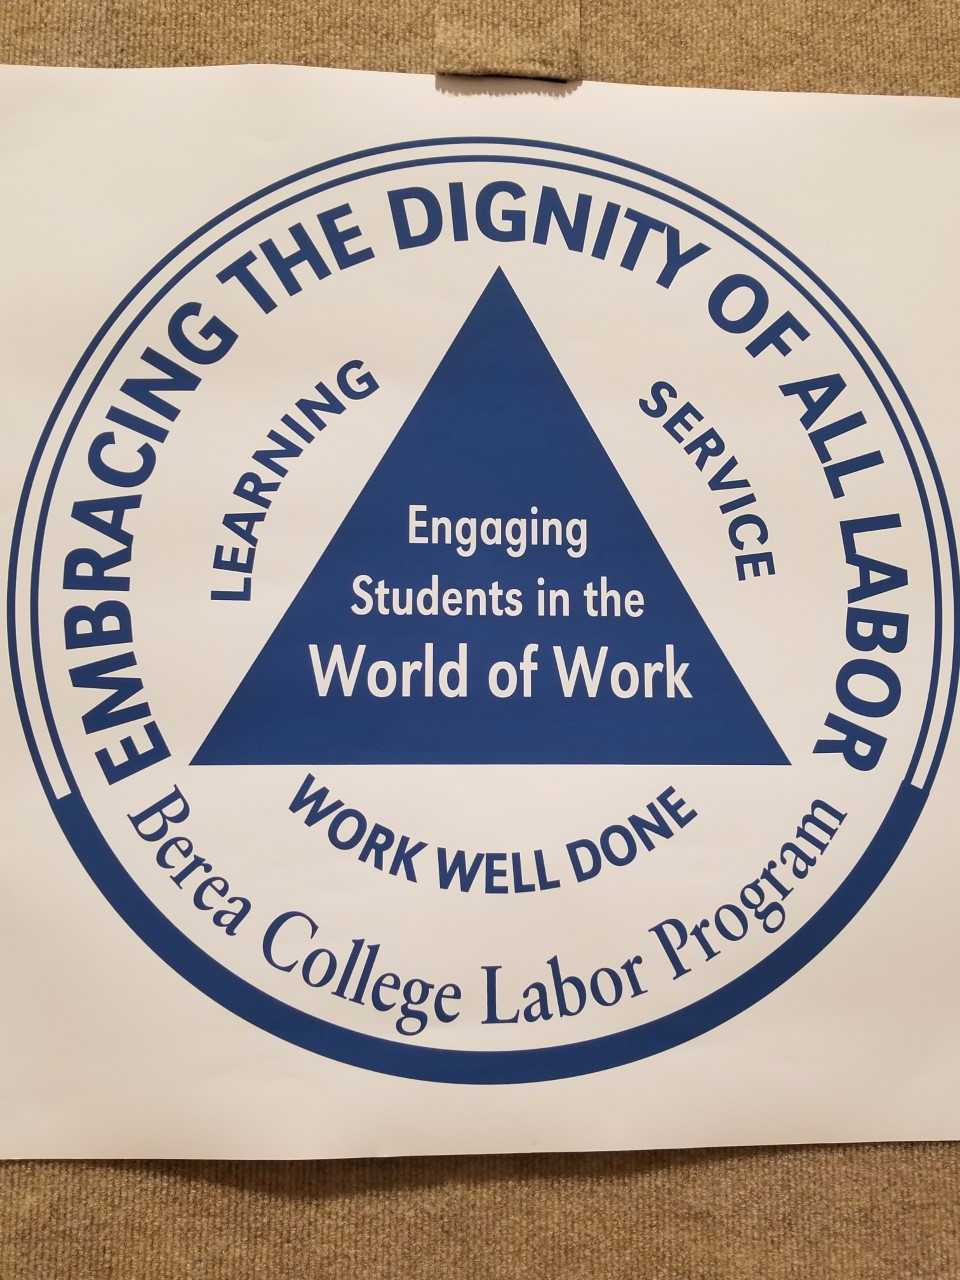 Back to Berea Spotlight: College Labor History